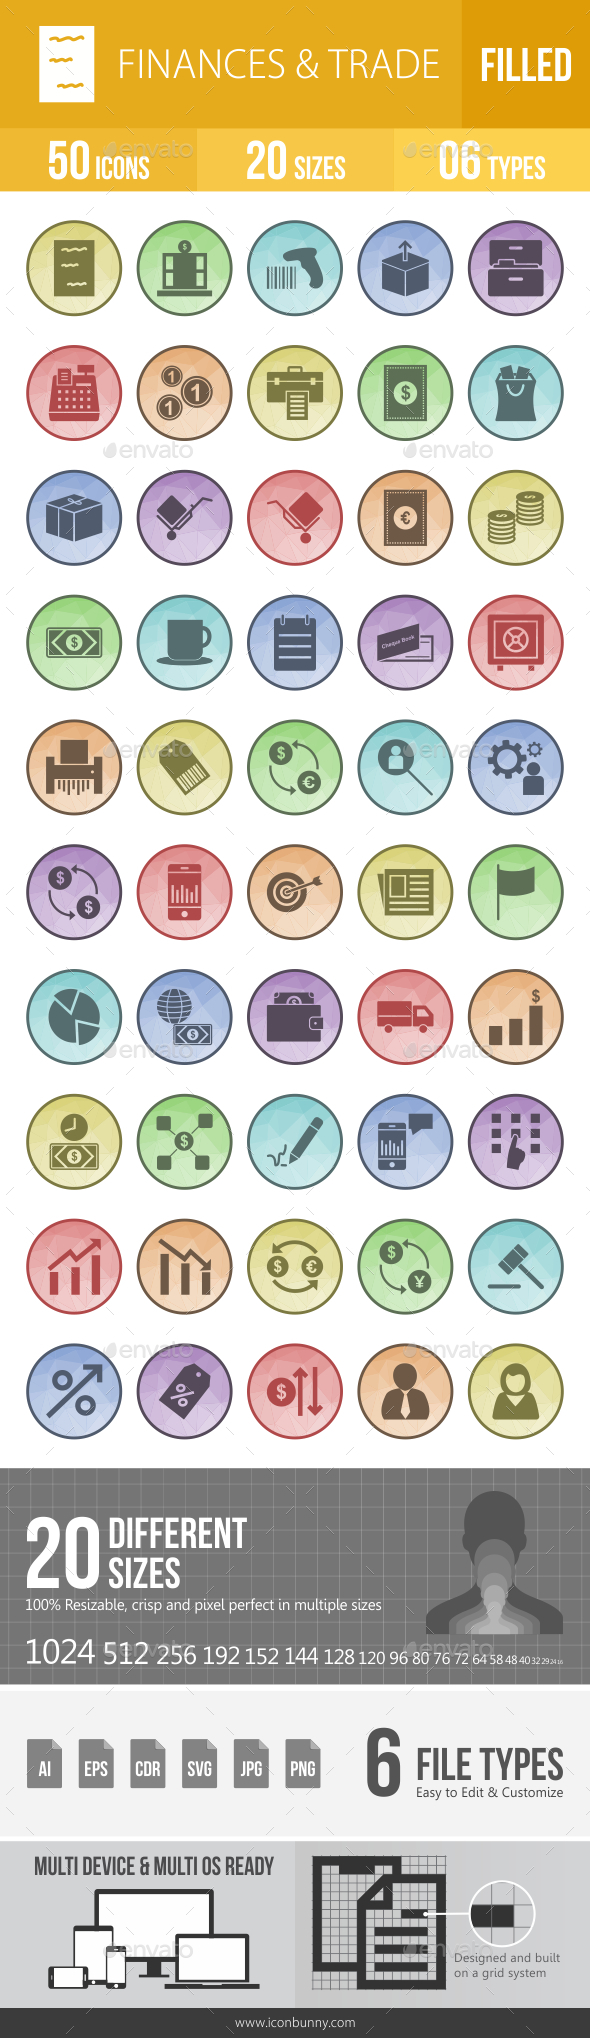 GraphicRiver 50 Finances & Trade Filled Low Poly Icons 21157319